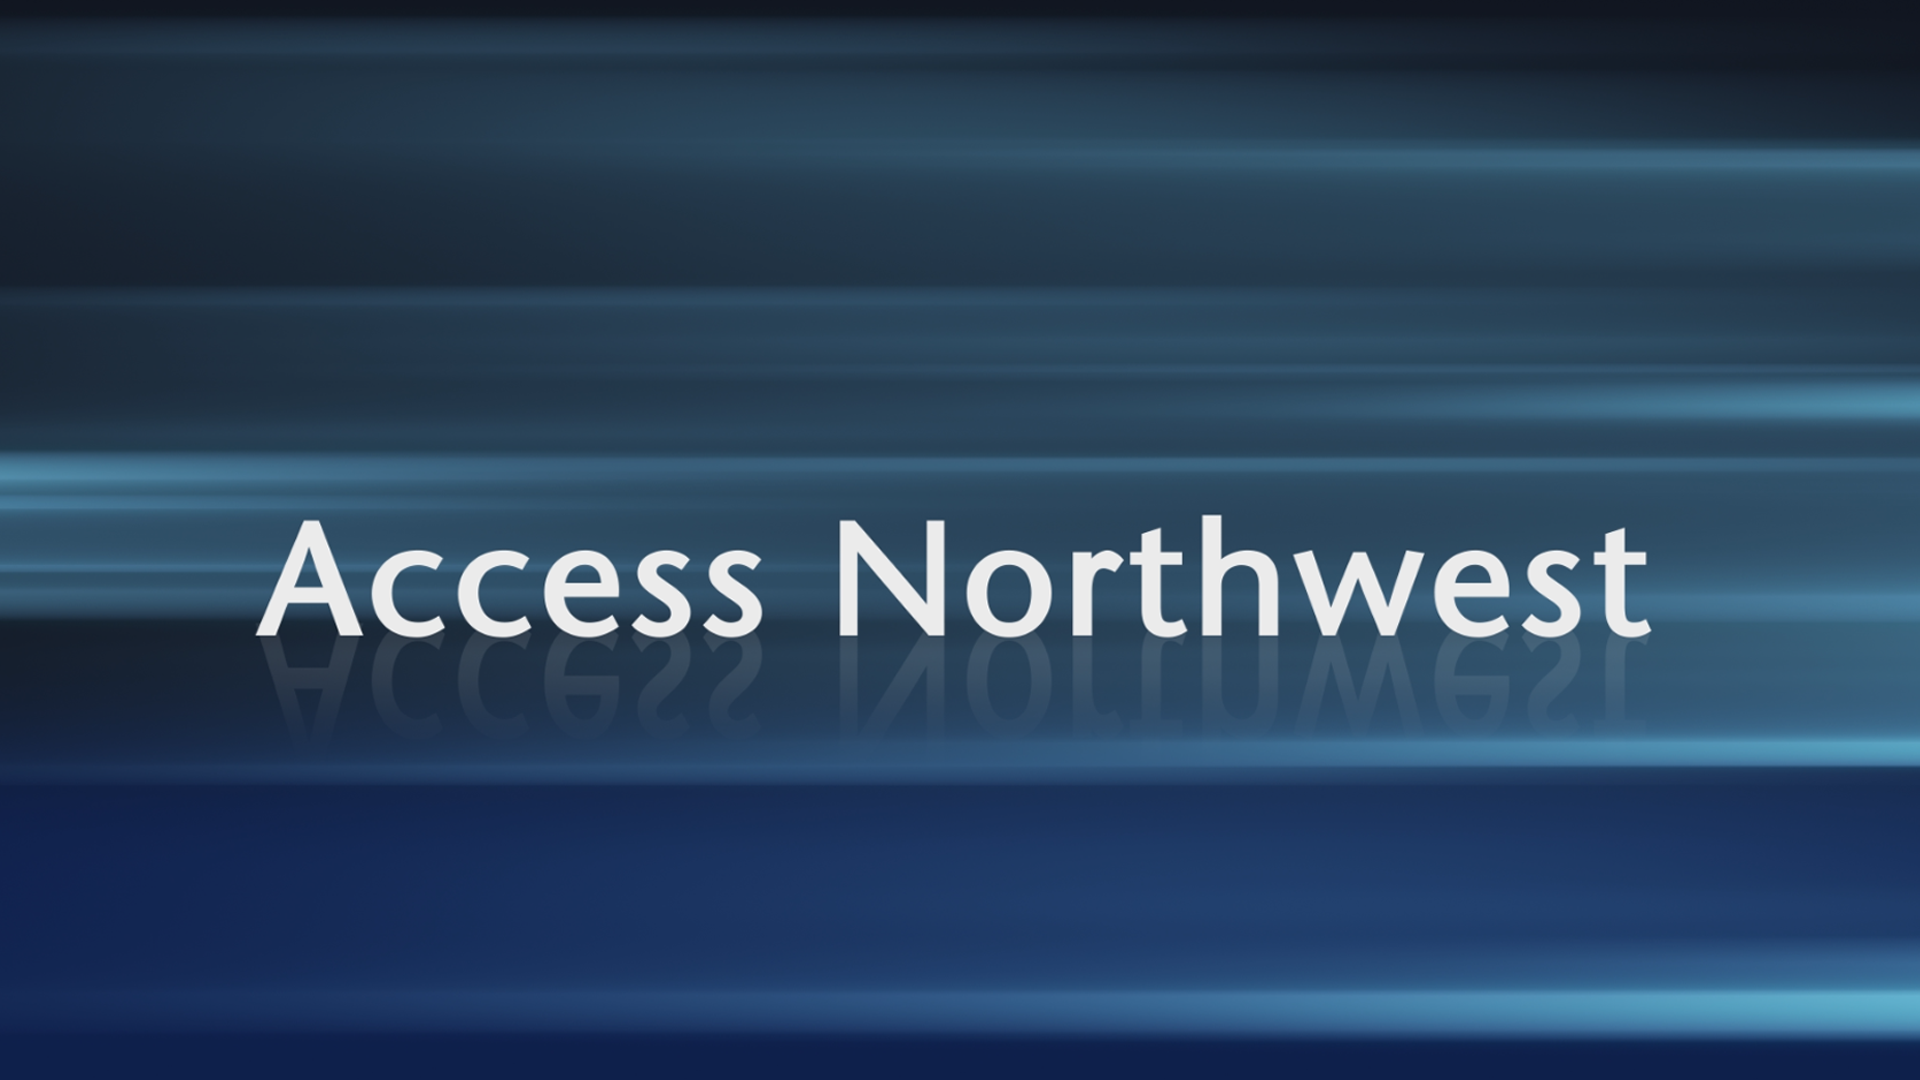 Access Northwest